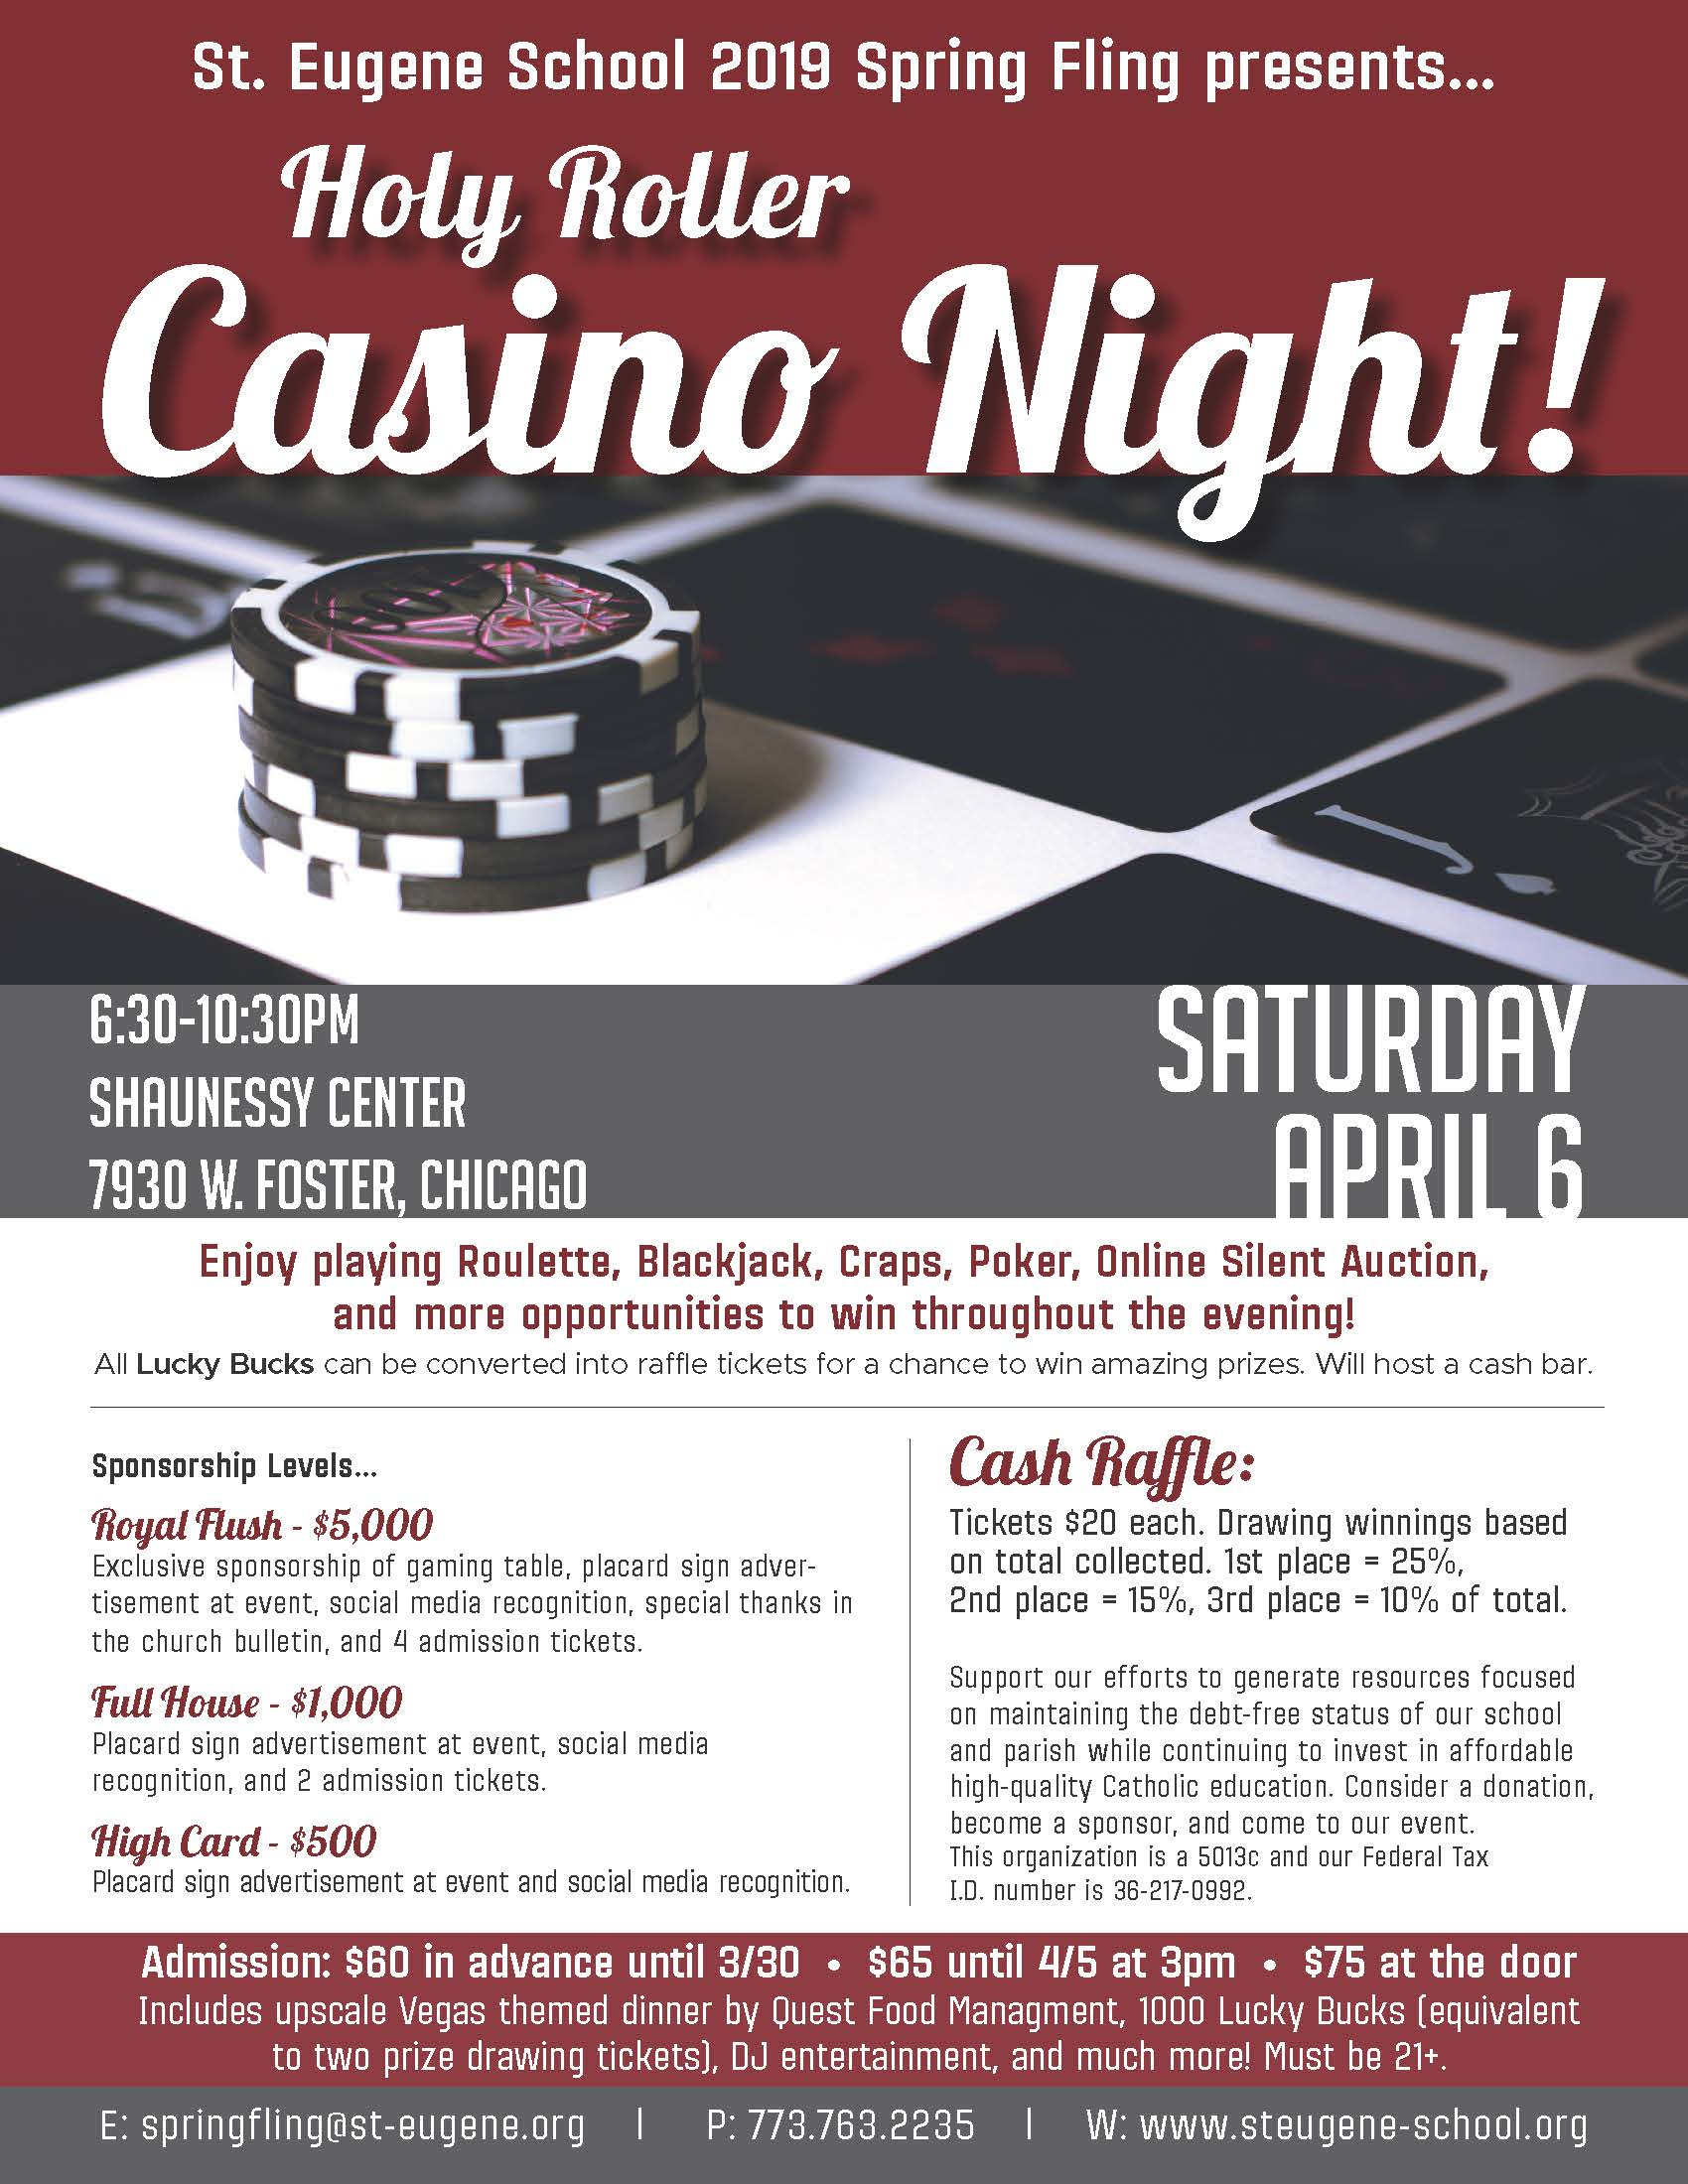 Casino Night Flyer 2019.jpg